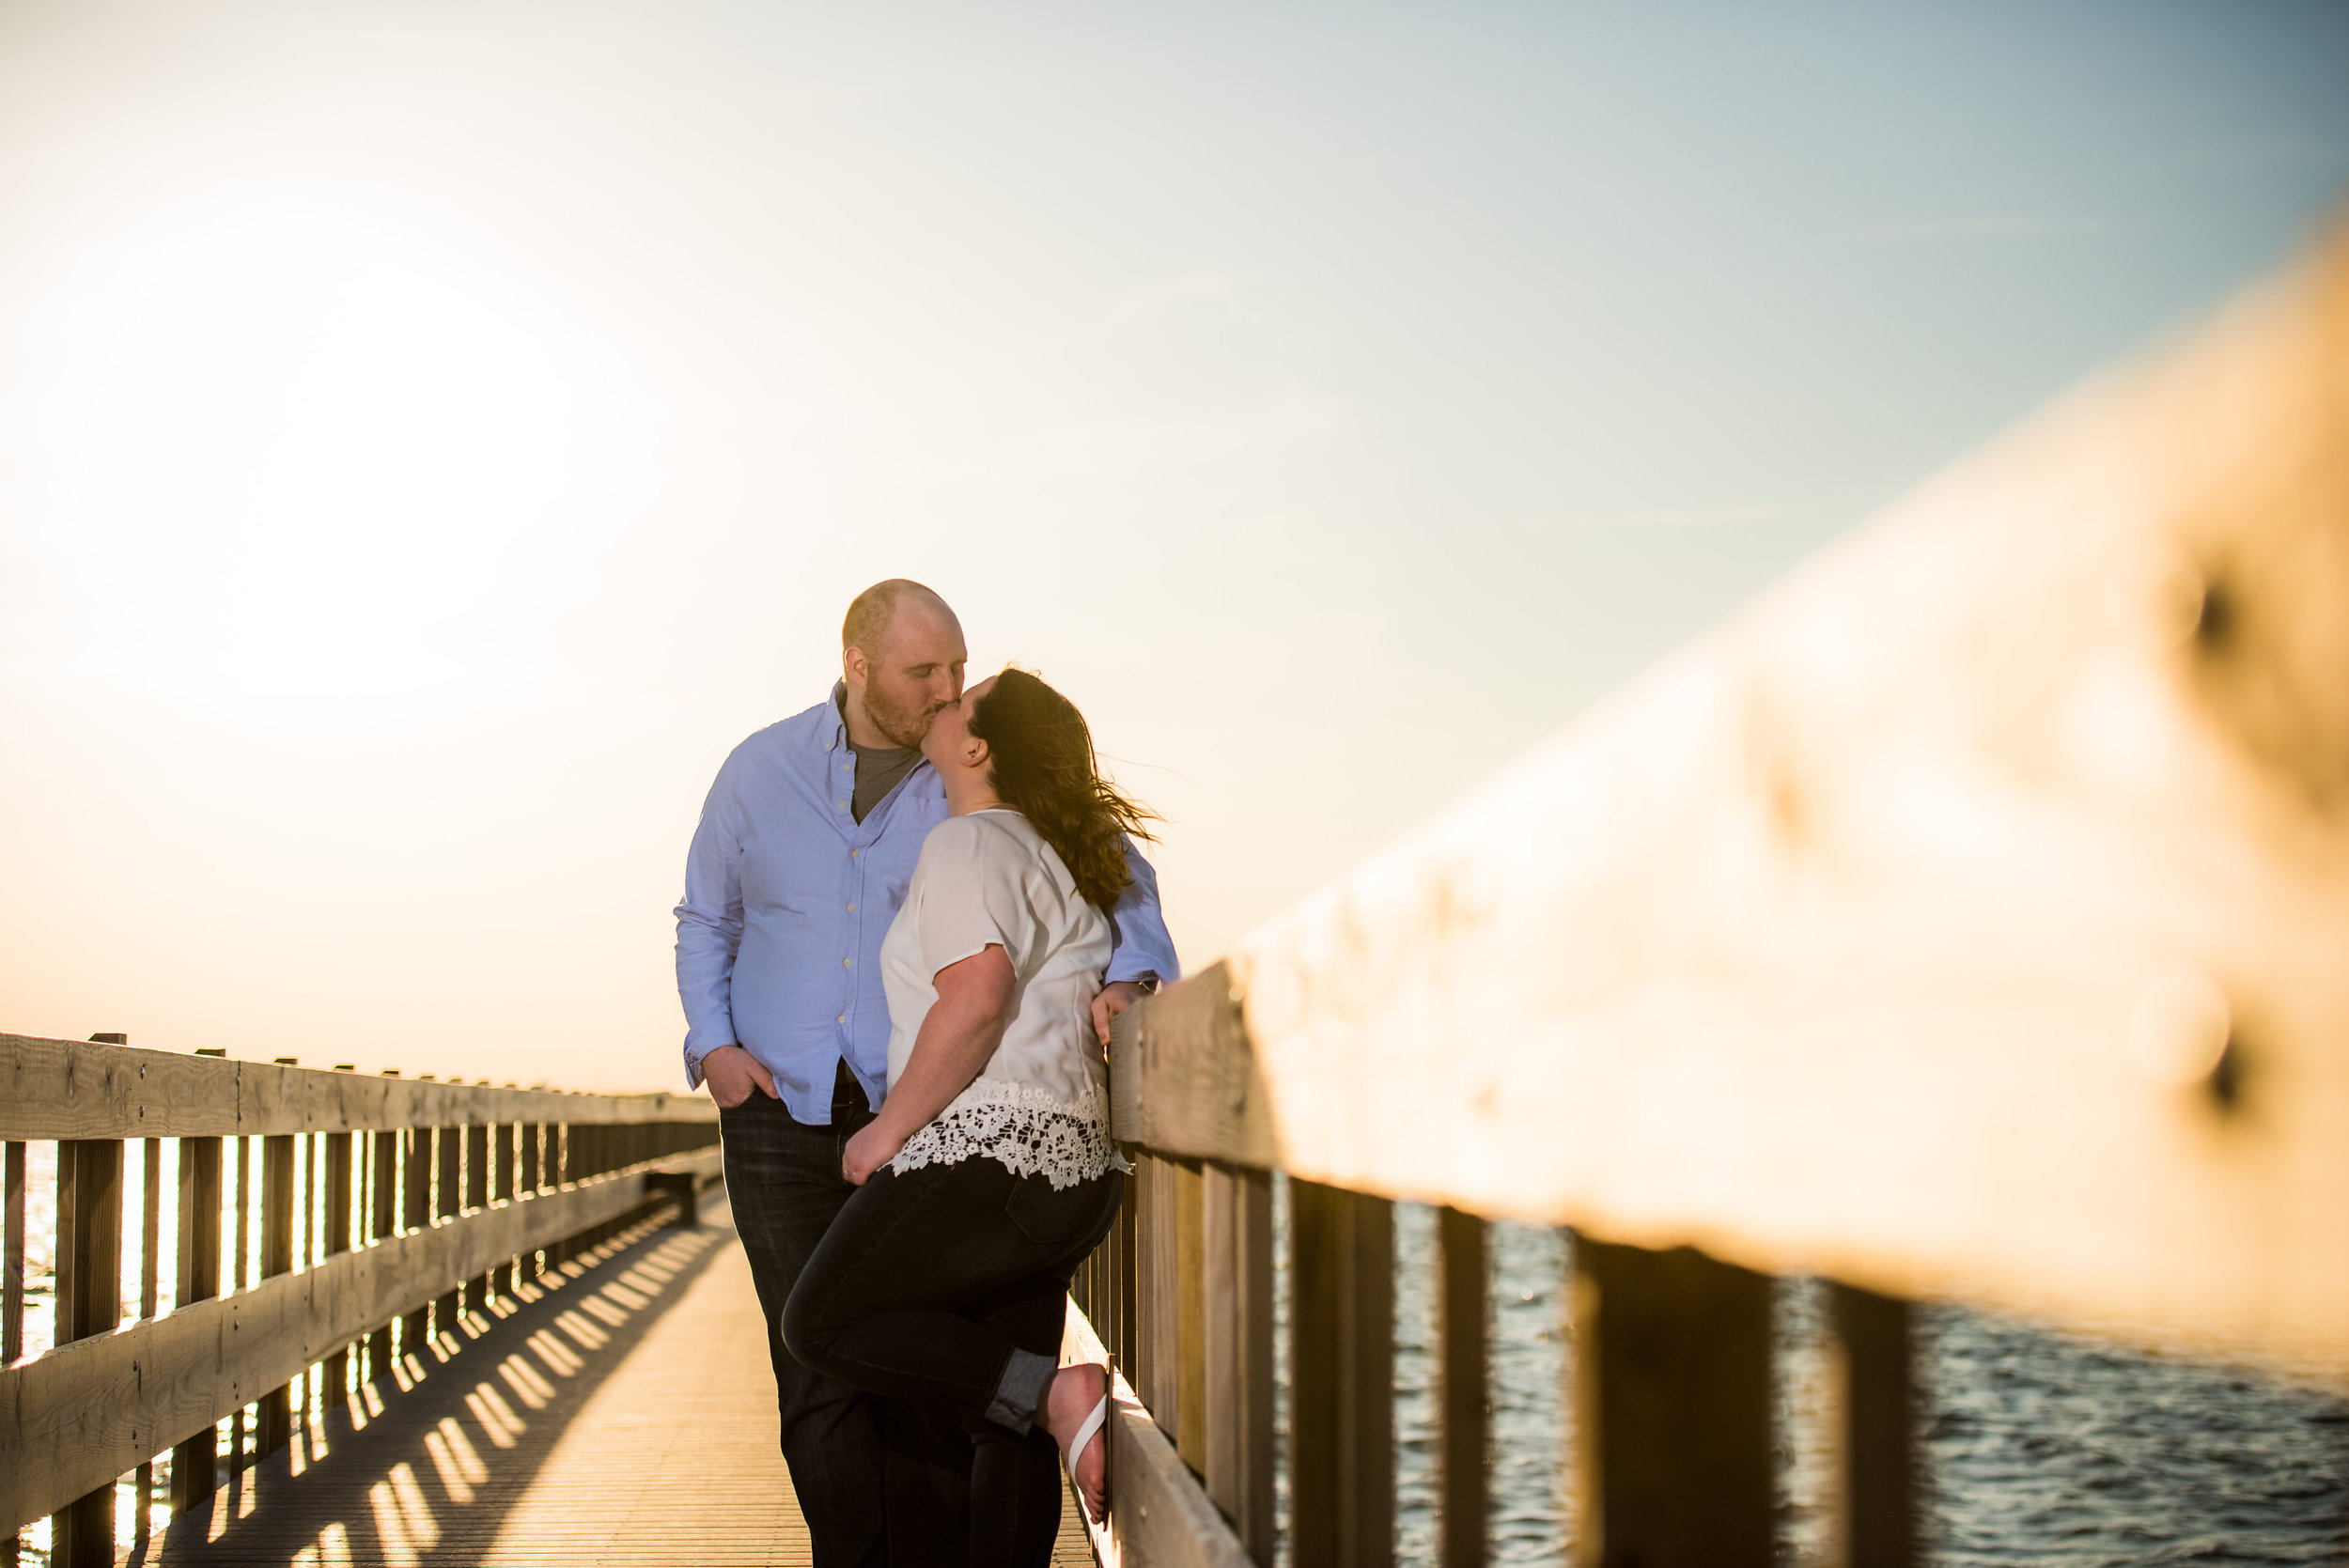 Seaside, NJ Boardwalk & Beach Engagement Photos Jake & Jessica 11